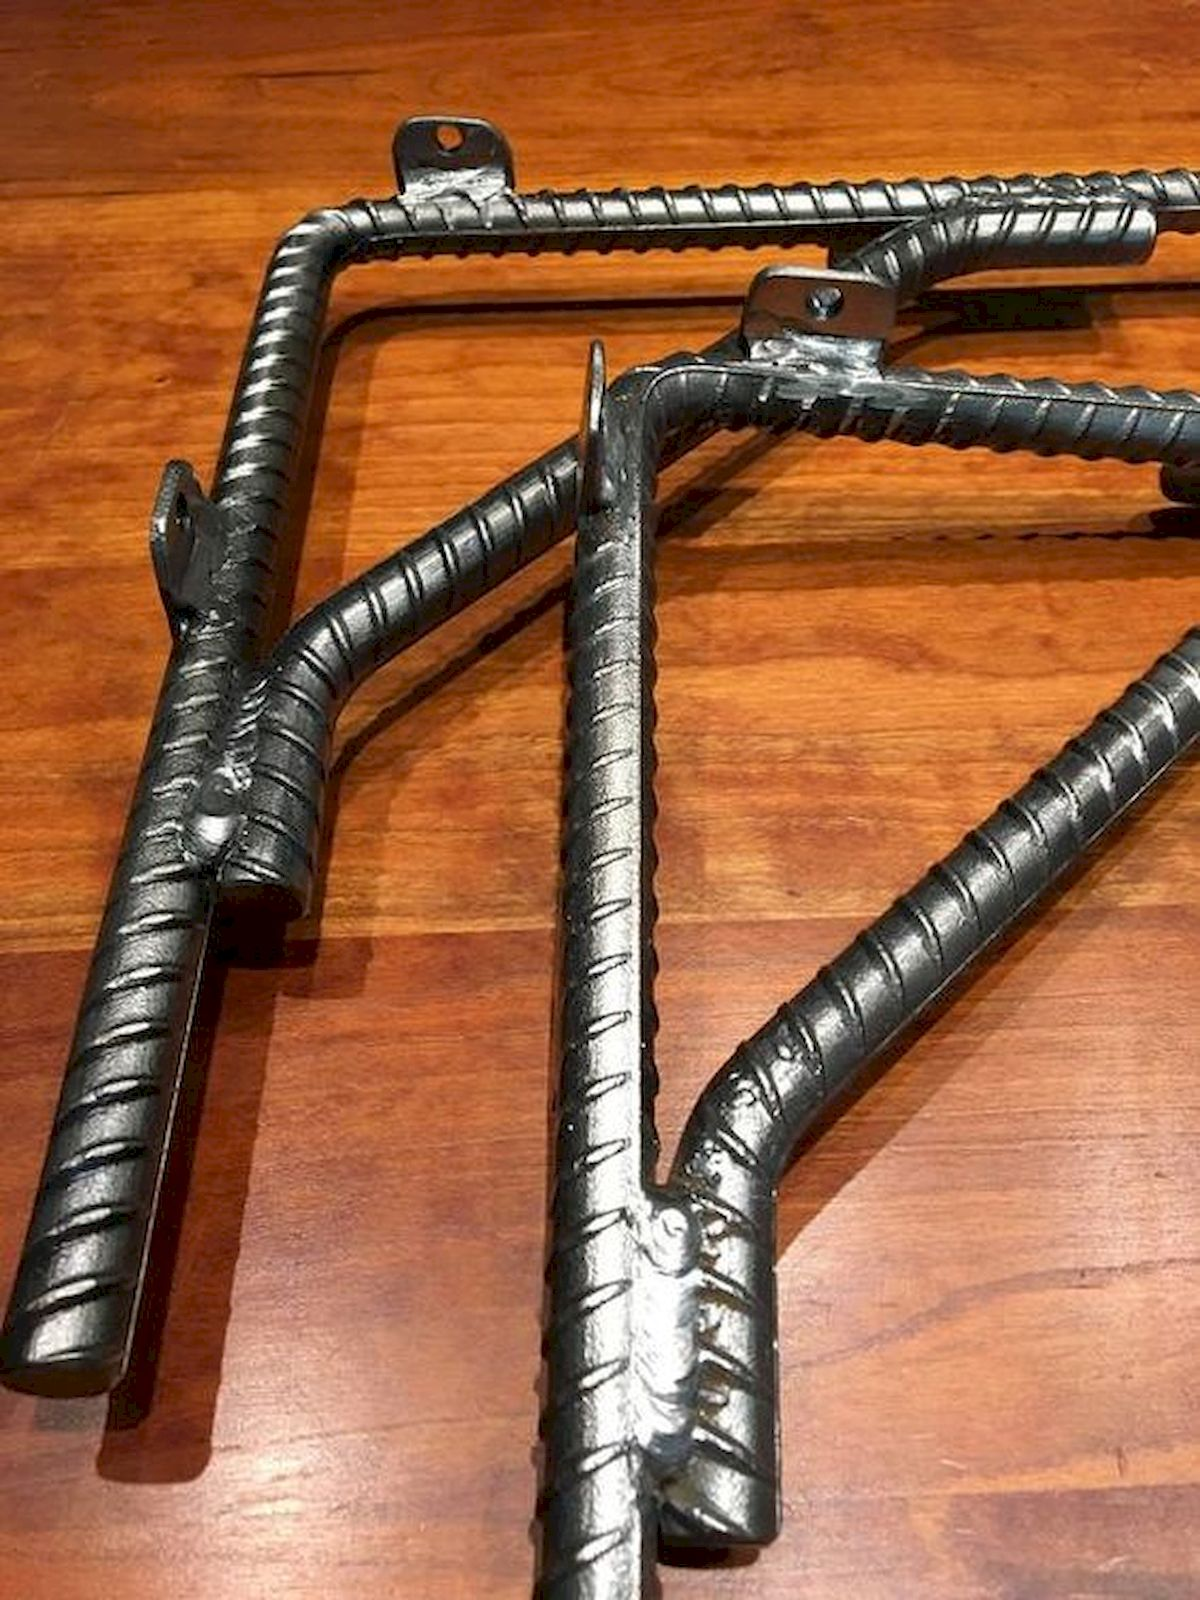 50+ Easy DIY Welding Projects Ideas for Art and Decor (15)